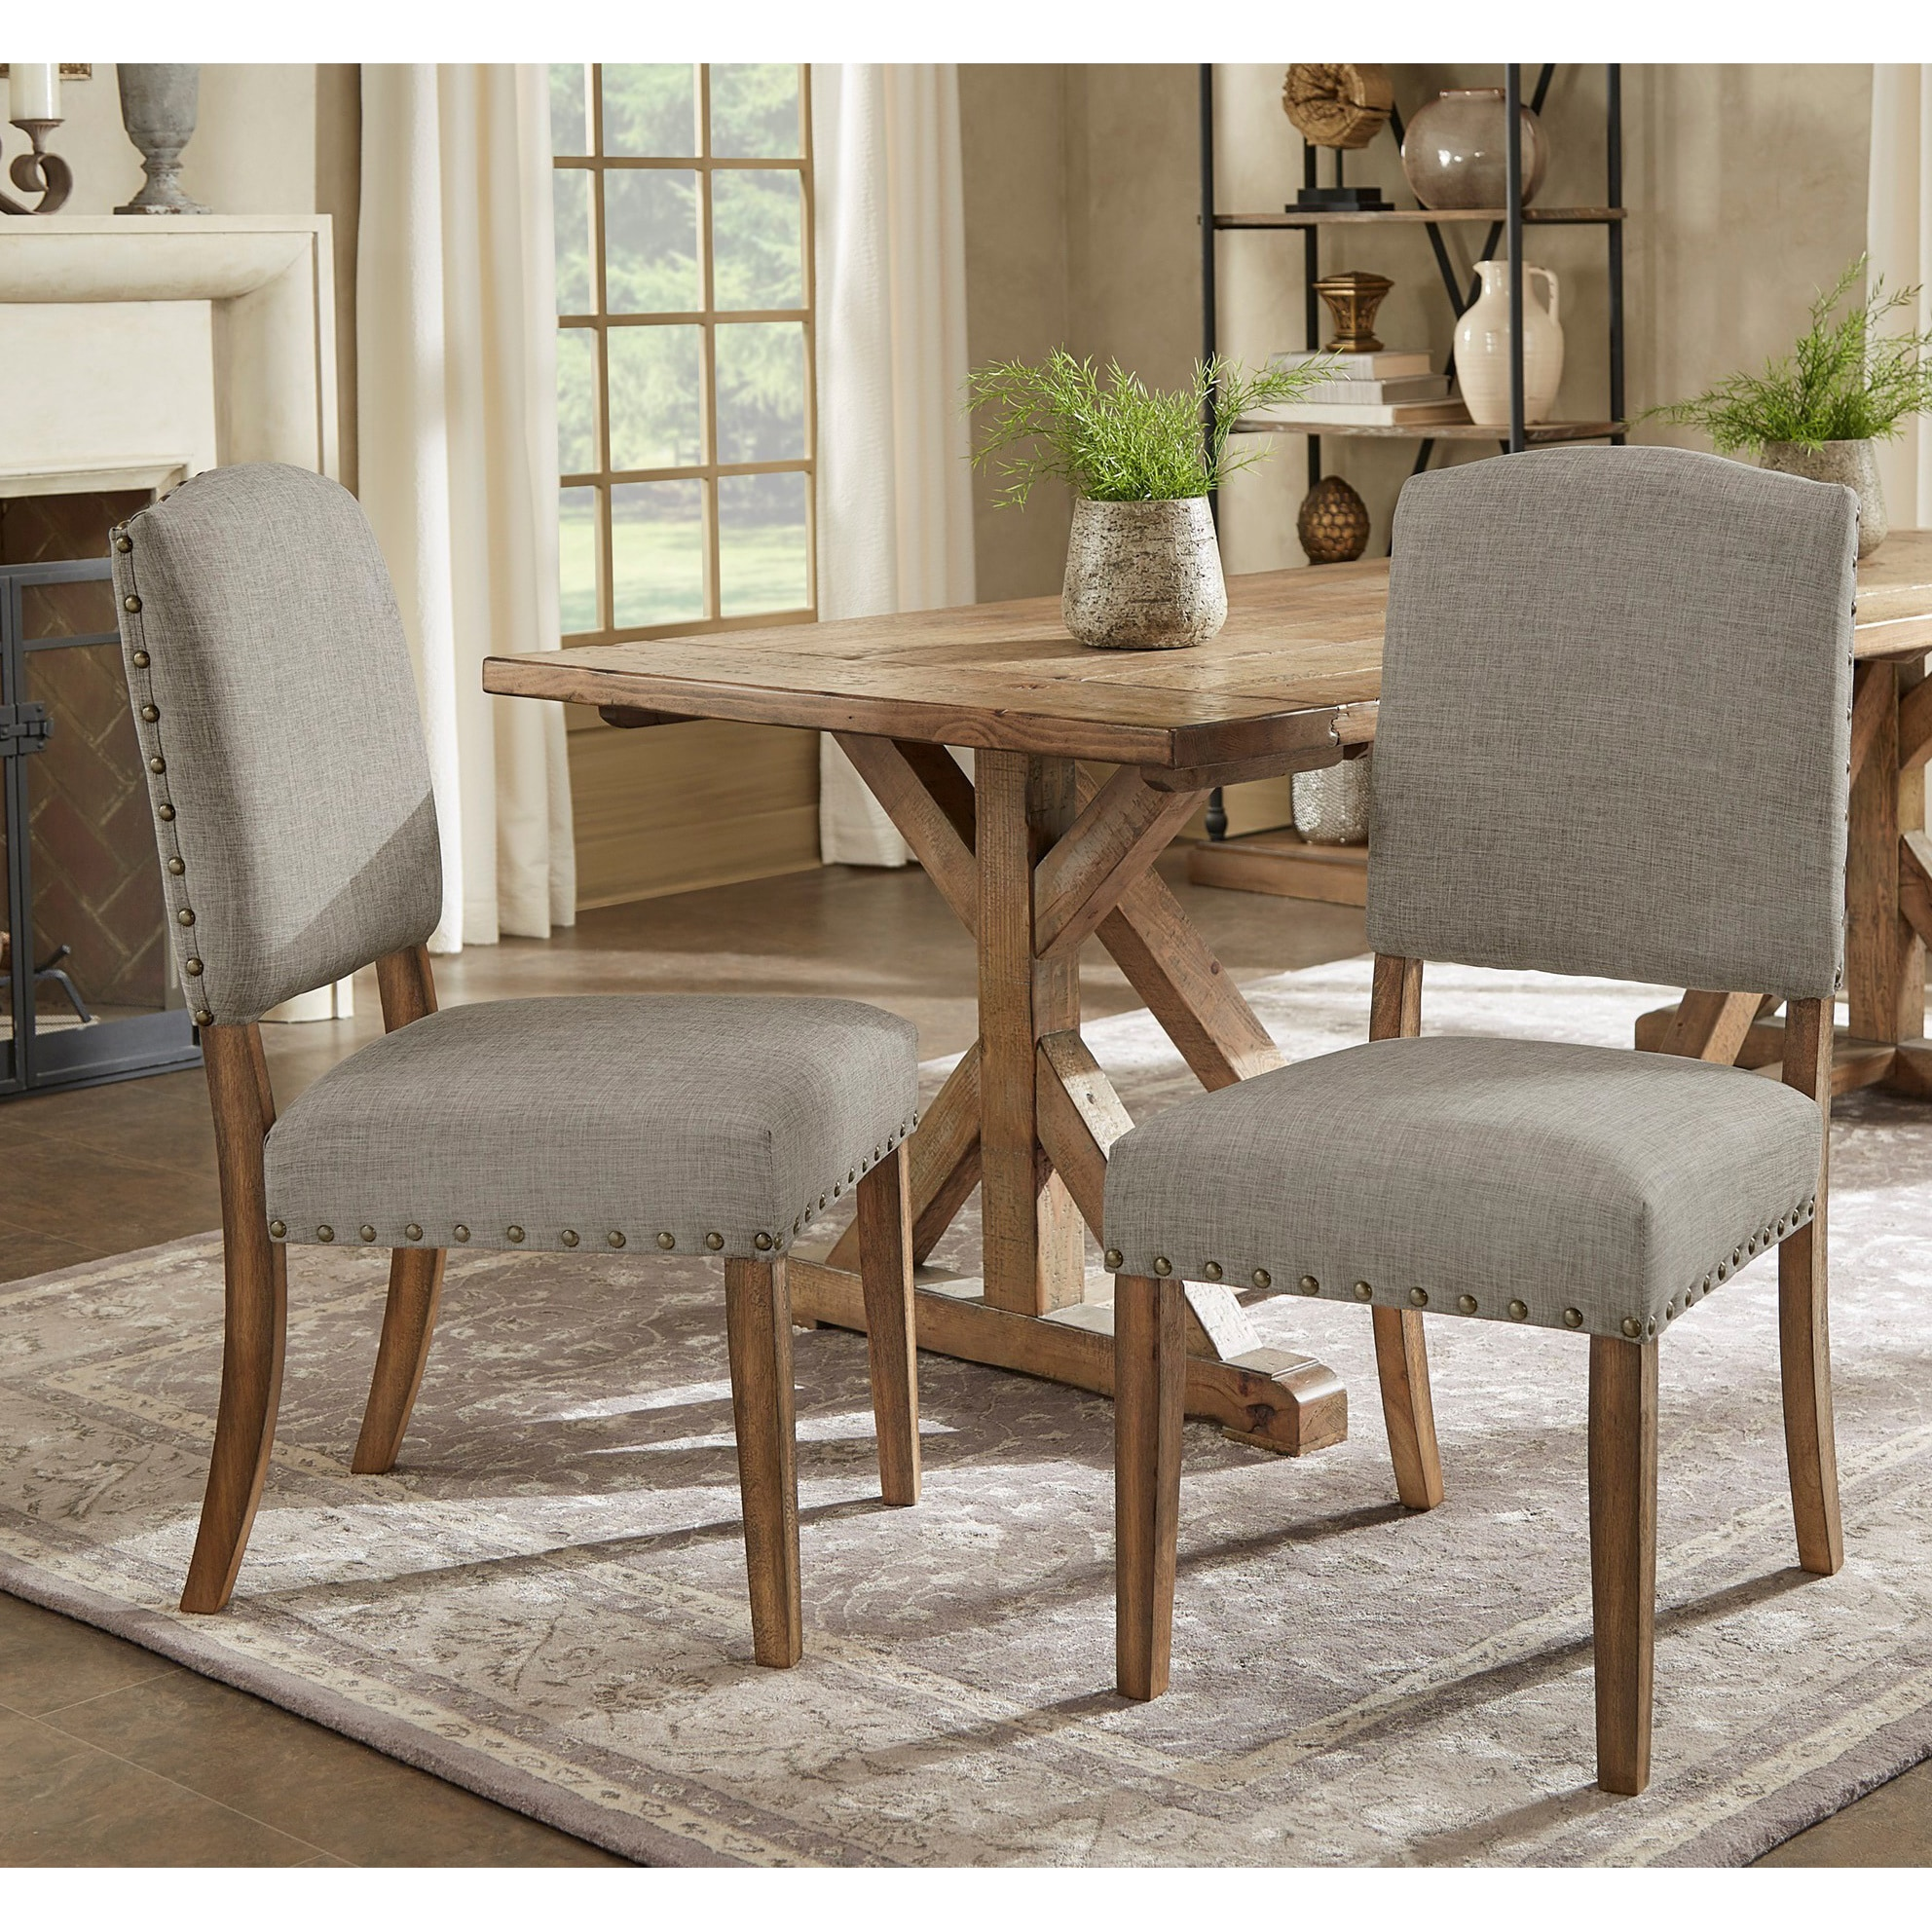 Enjoyable Benchwright Premium Nailhead Upholstered Dining Chairs Set Of 2 By Inspire Q Artisan Gmtry Best Dining Table And Chair Ideas Images Gmtryco